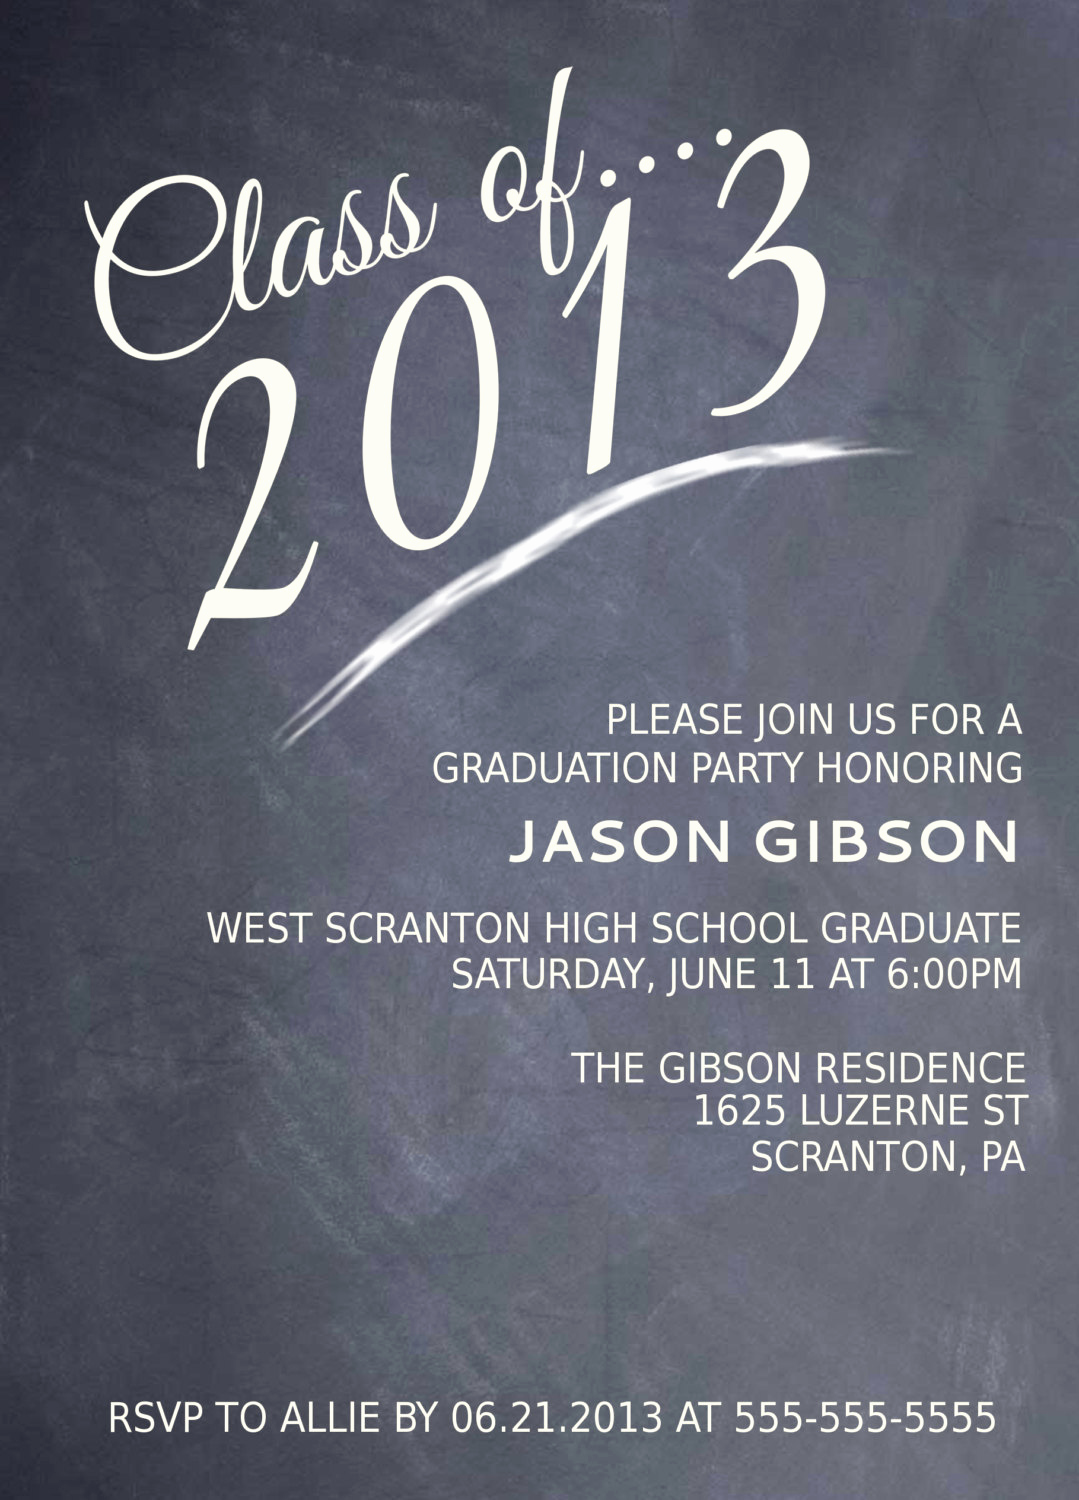 College Graduation Party Invitation Wording Awesome Printable Graduation Party Invitation Graduation Announcement